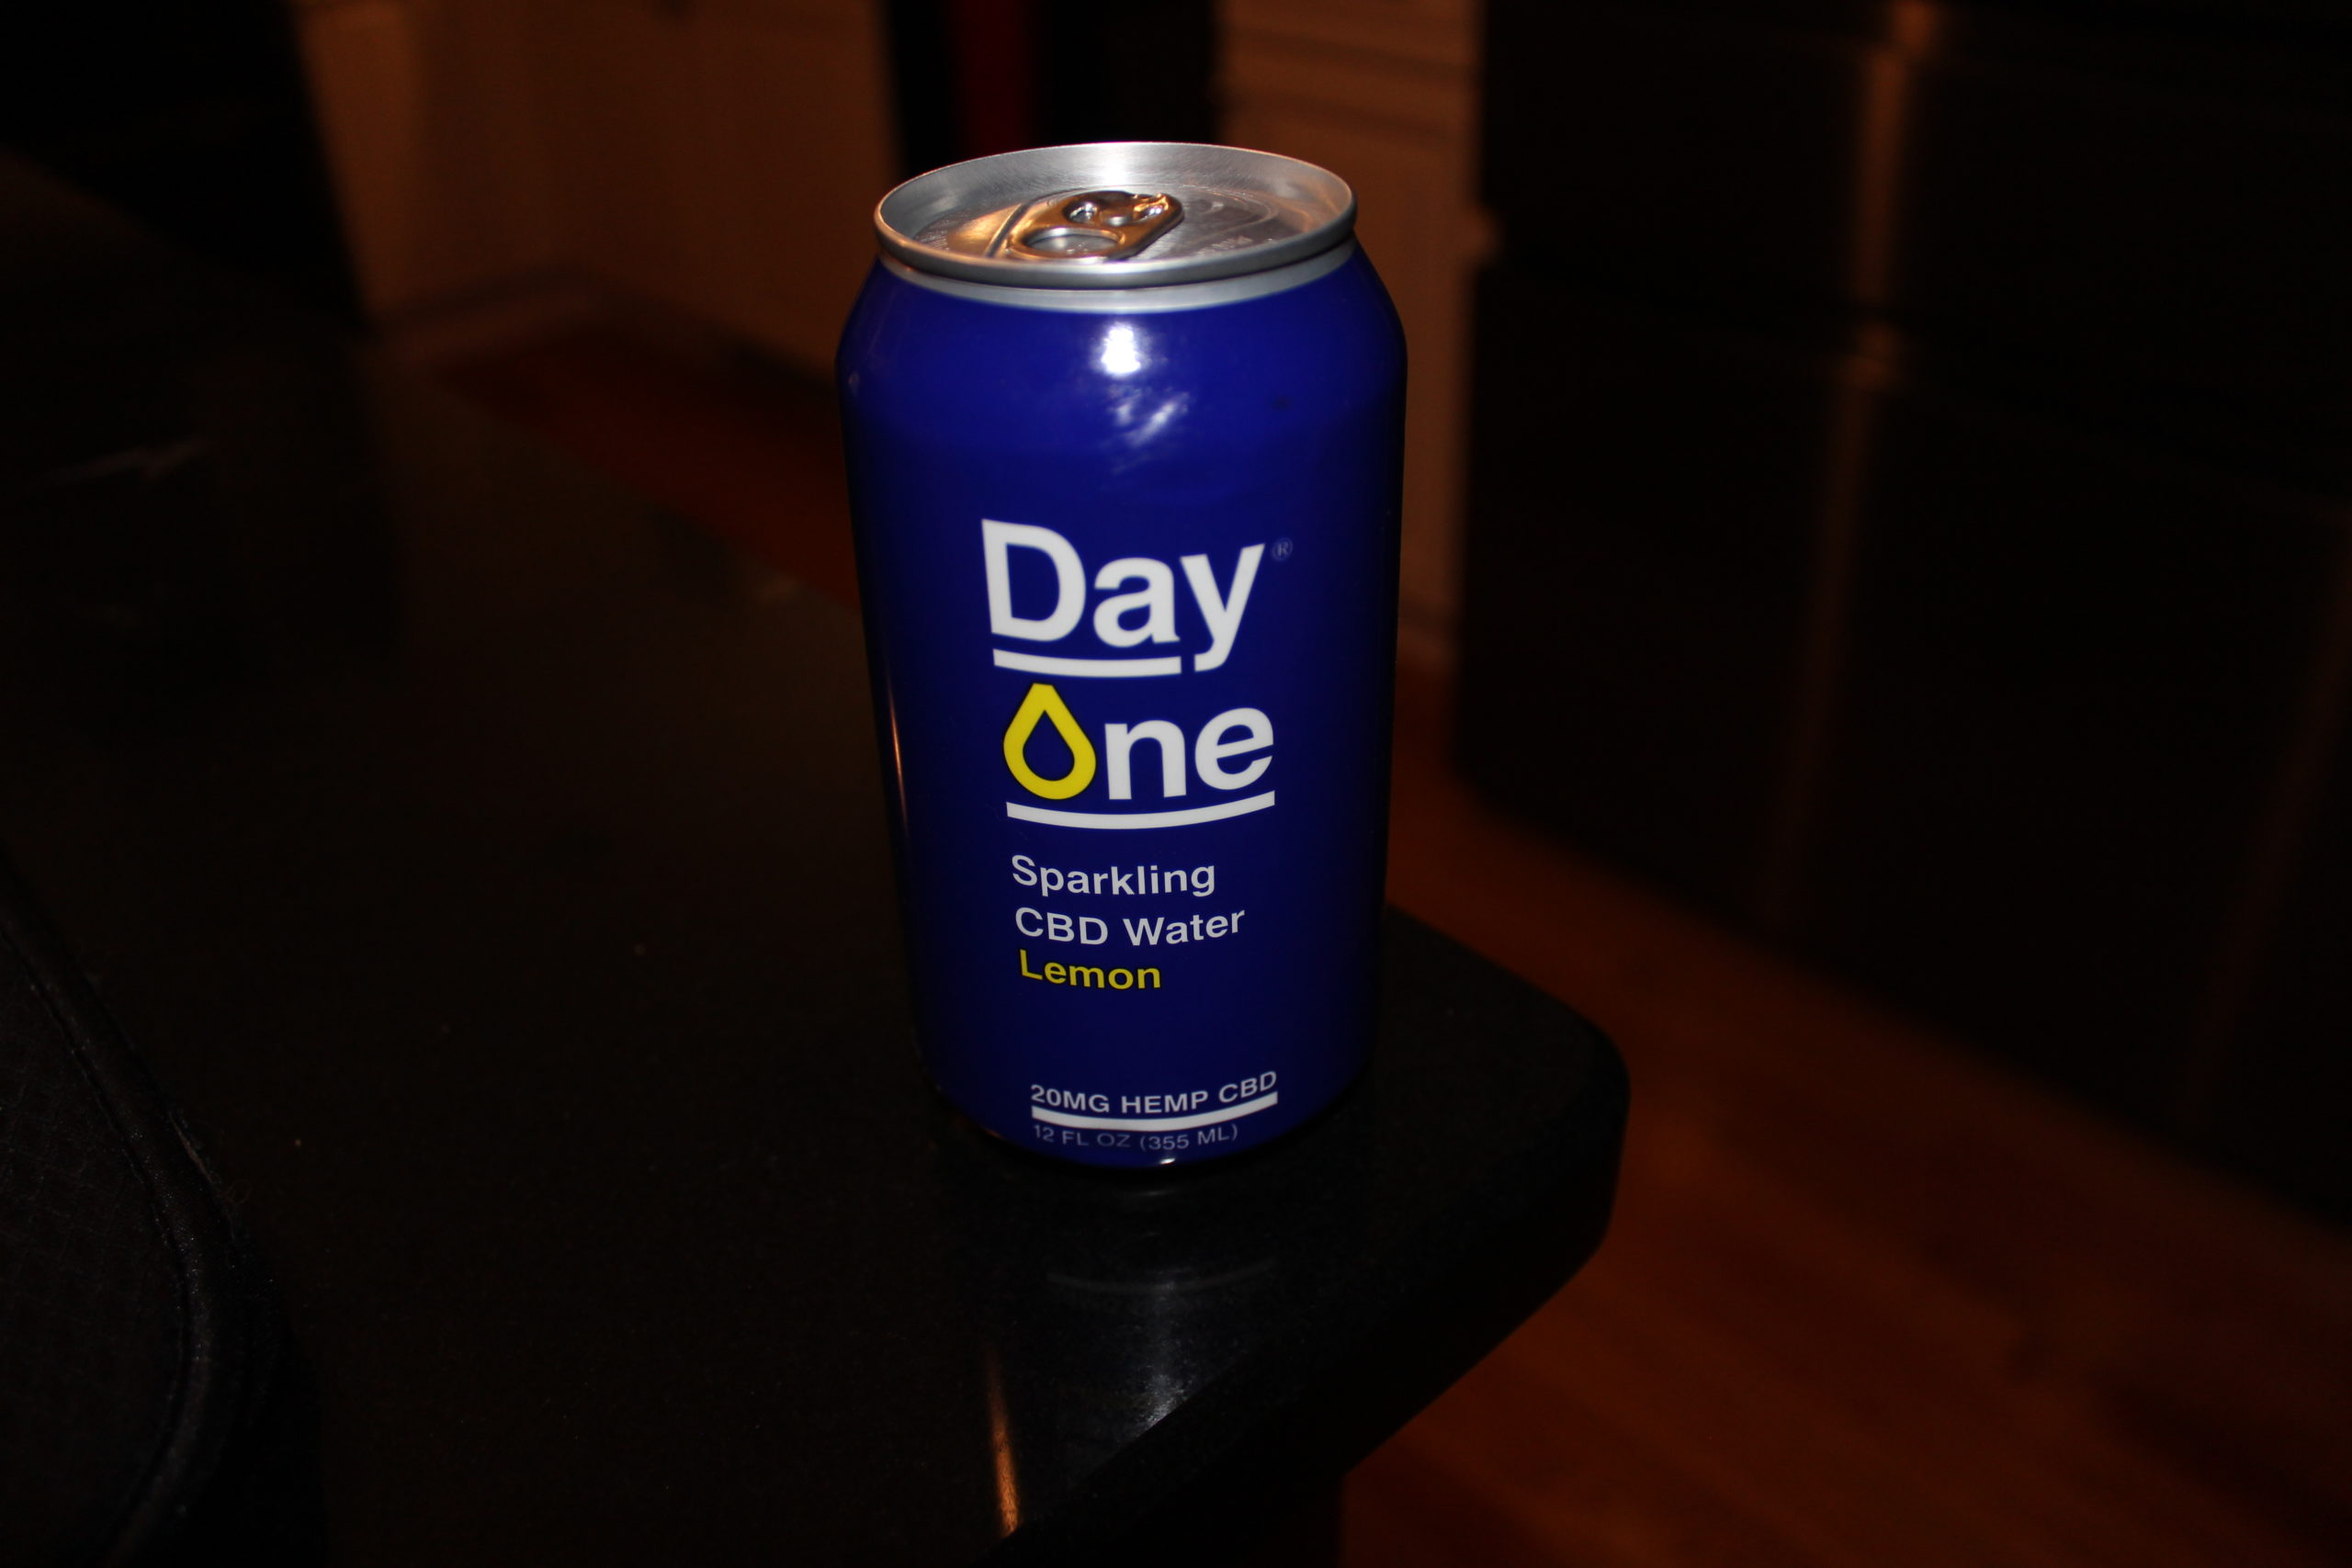 Day One CBD Sparkling Water